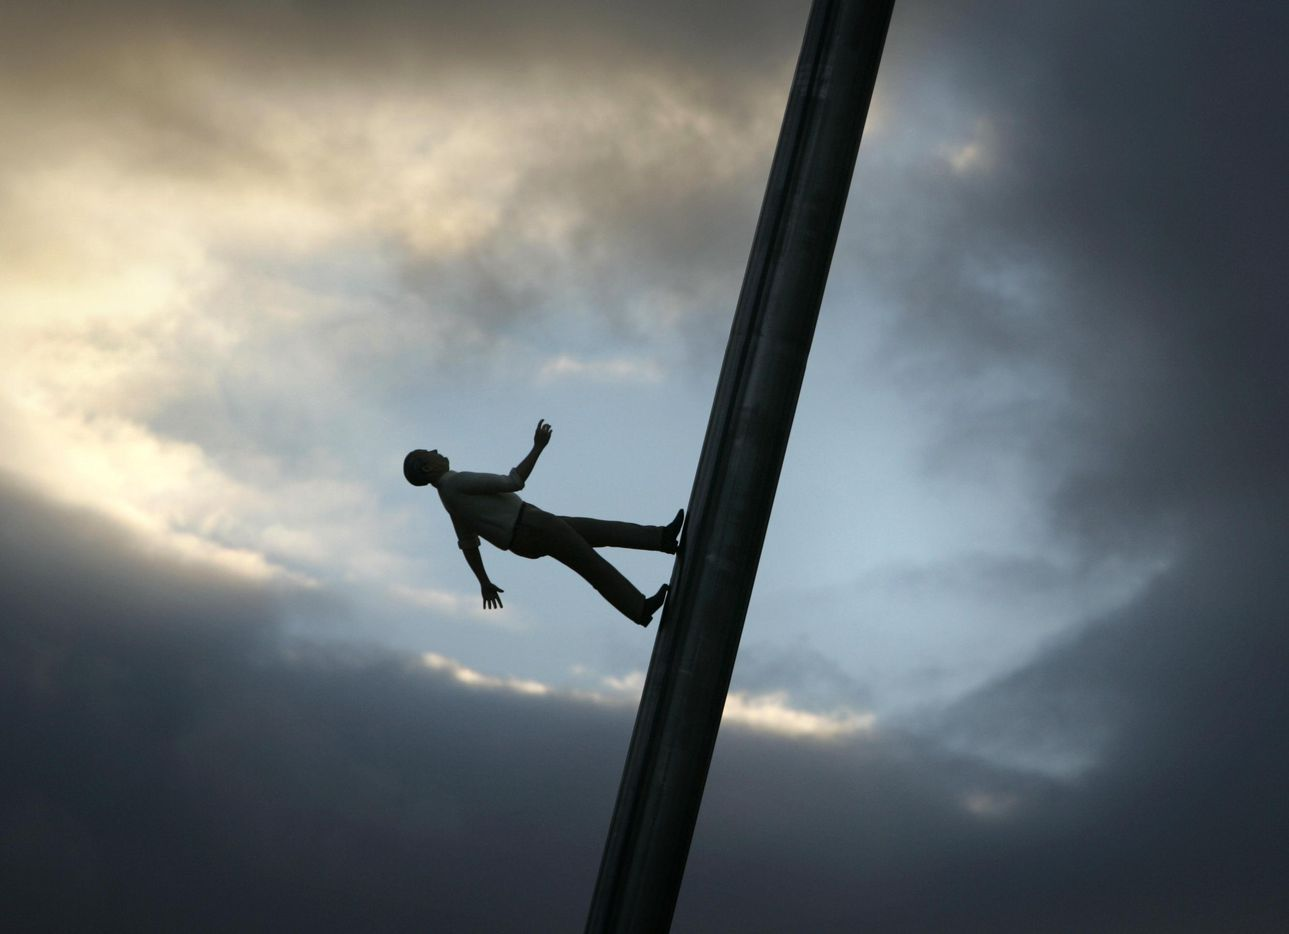 """An early evening cloud formation provided a dramatic background for one of the six life-size human figures on the Jonathan Borofsky sculpture named """"Walking to the Sky"""" at the Nasher Sculpture Center on the evening of March 22, 2005, in Dallas. The 100-foot-tall sculpture, which has been on display at Rockefeller Center in New York, was on display at the Nasher Sculpture Center for the following year."""